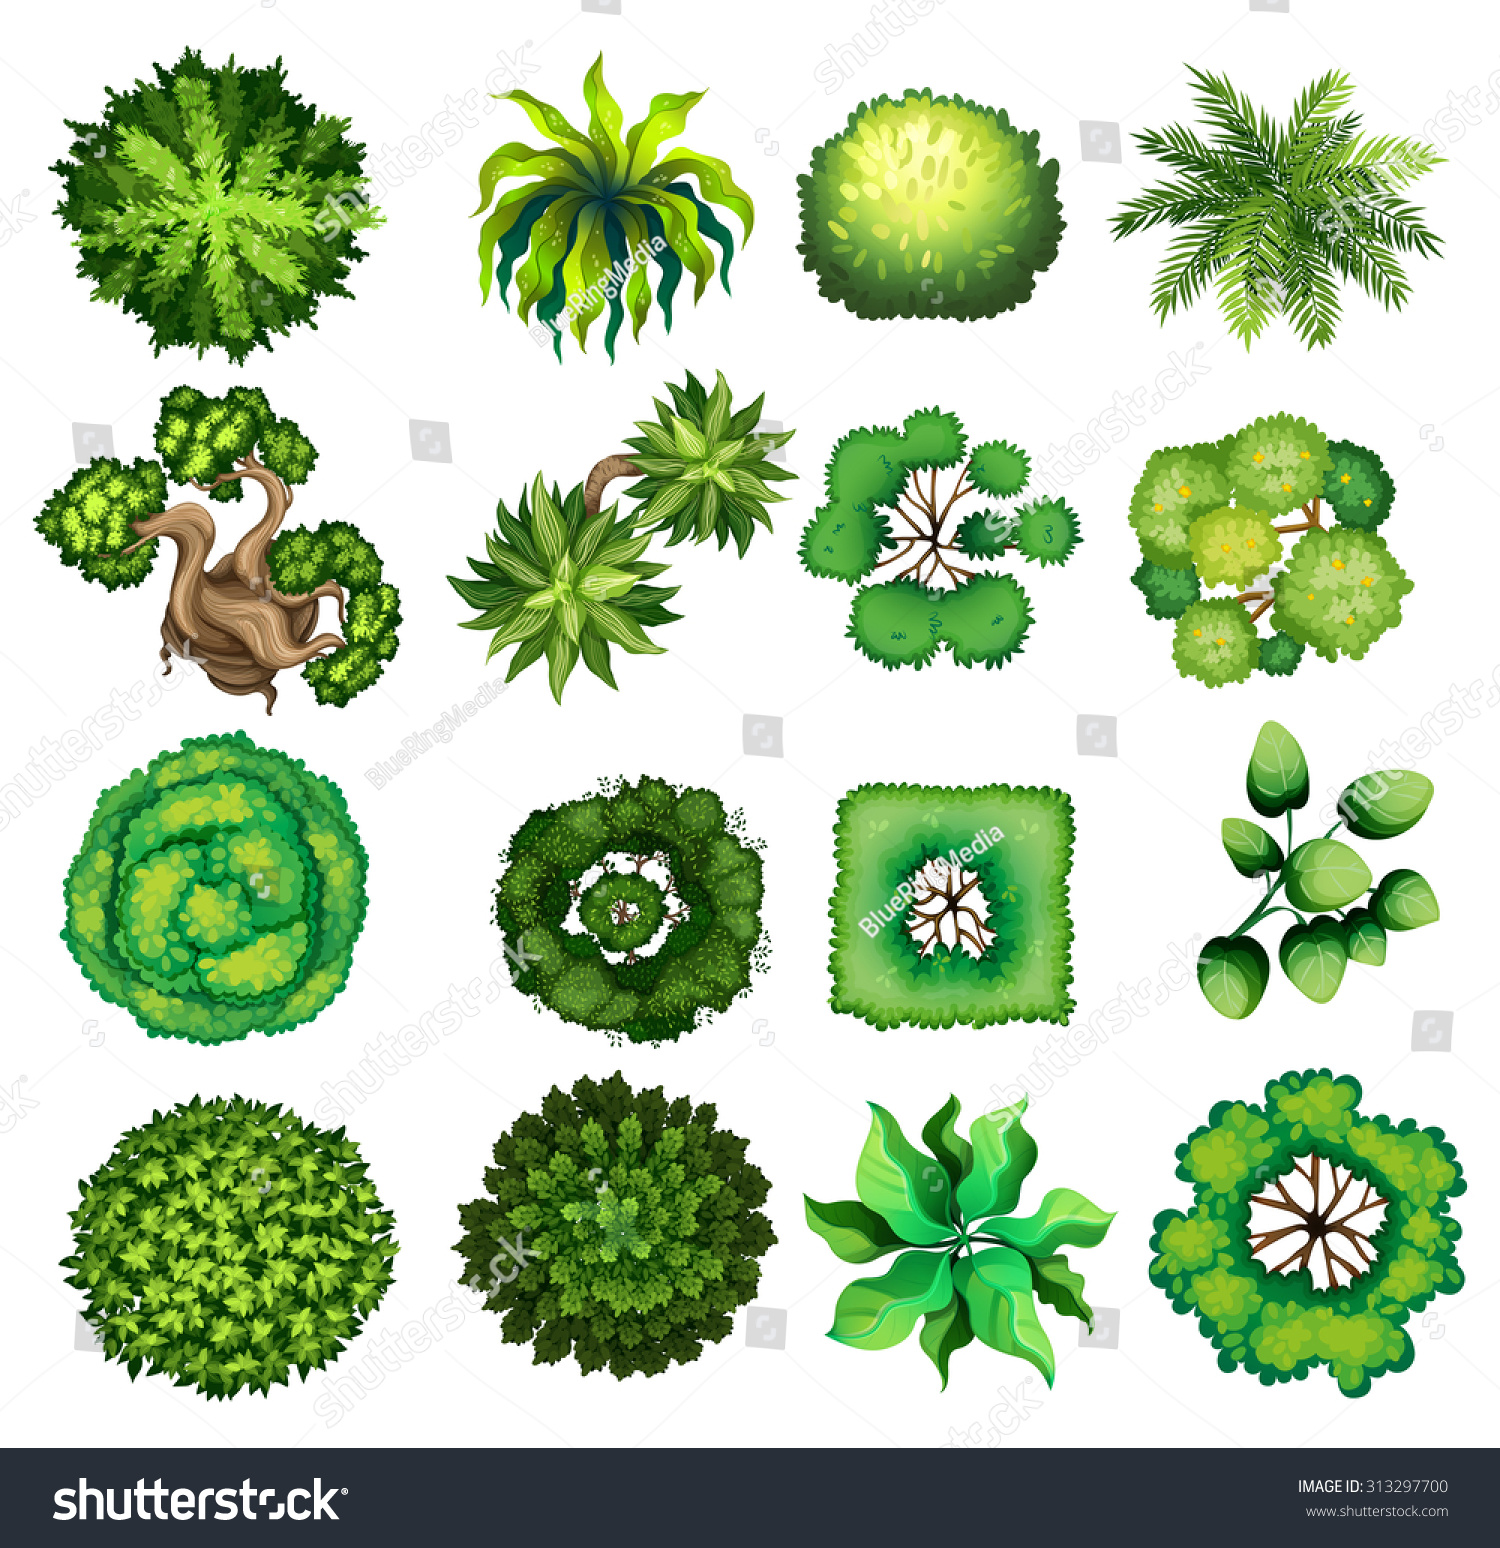 Plant top view vector in group download free vector art stock -  Vectors Illustrations Footage Music Top View Of Different Kind Of Plants Illustration